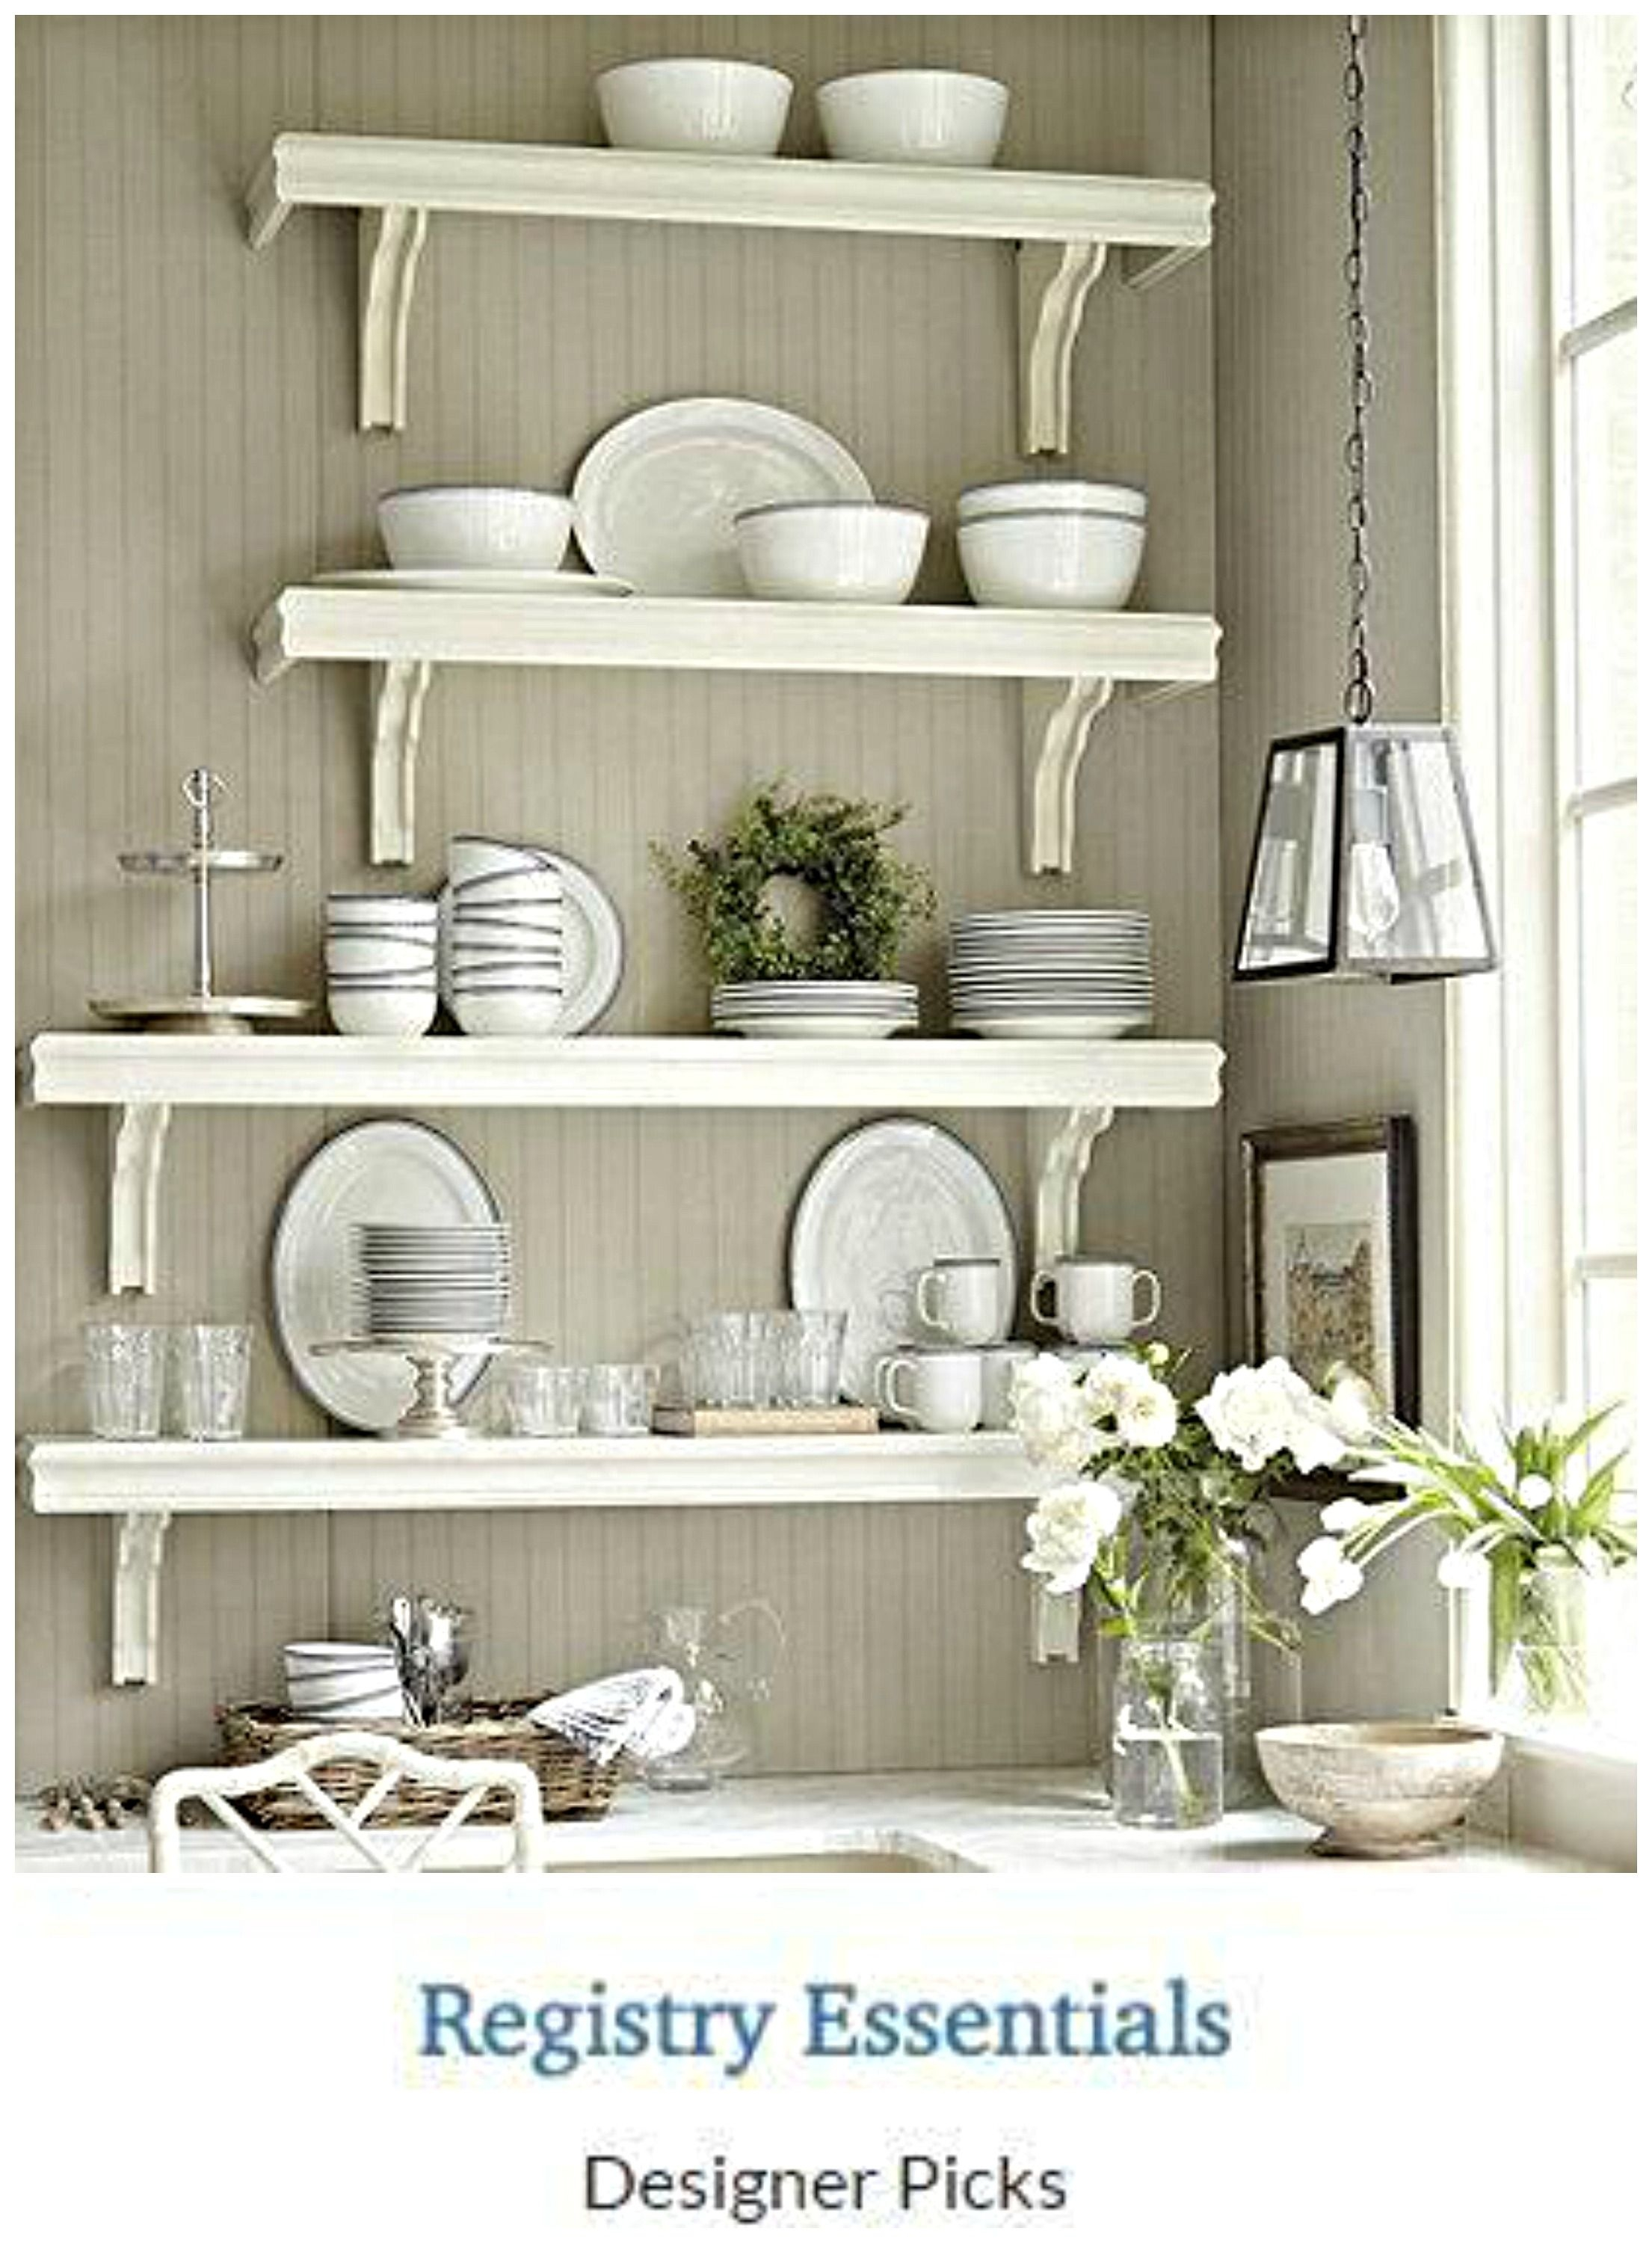 Wall Mounted Kitchen Shelves You Ll Love In 2021 Visualhunt